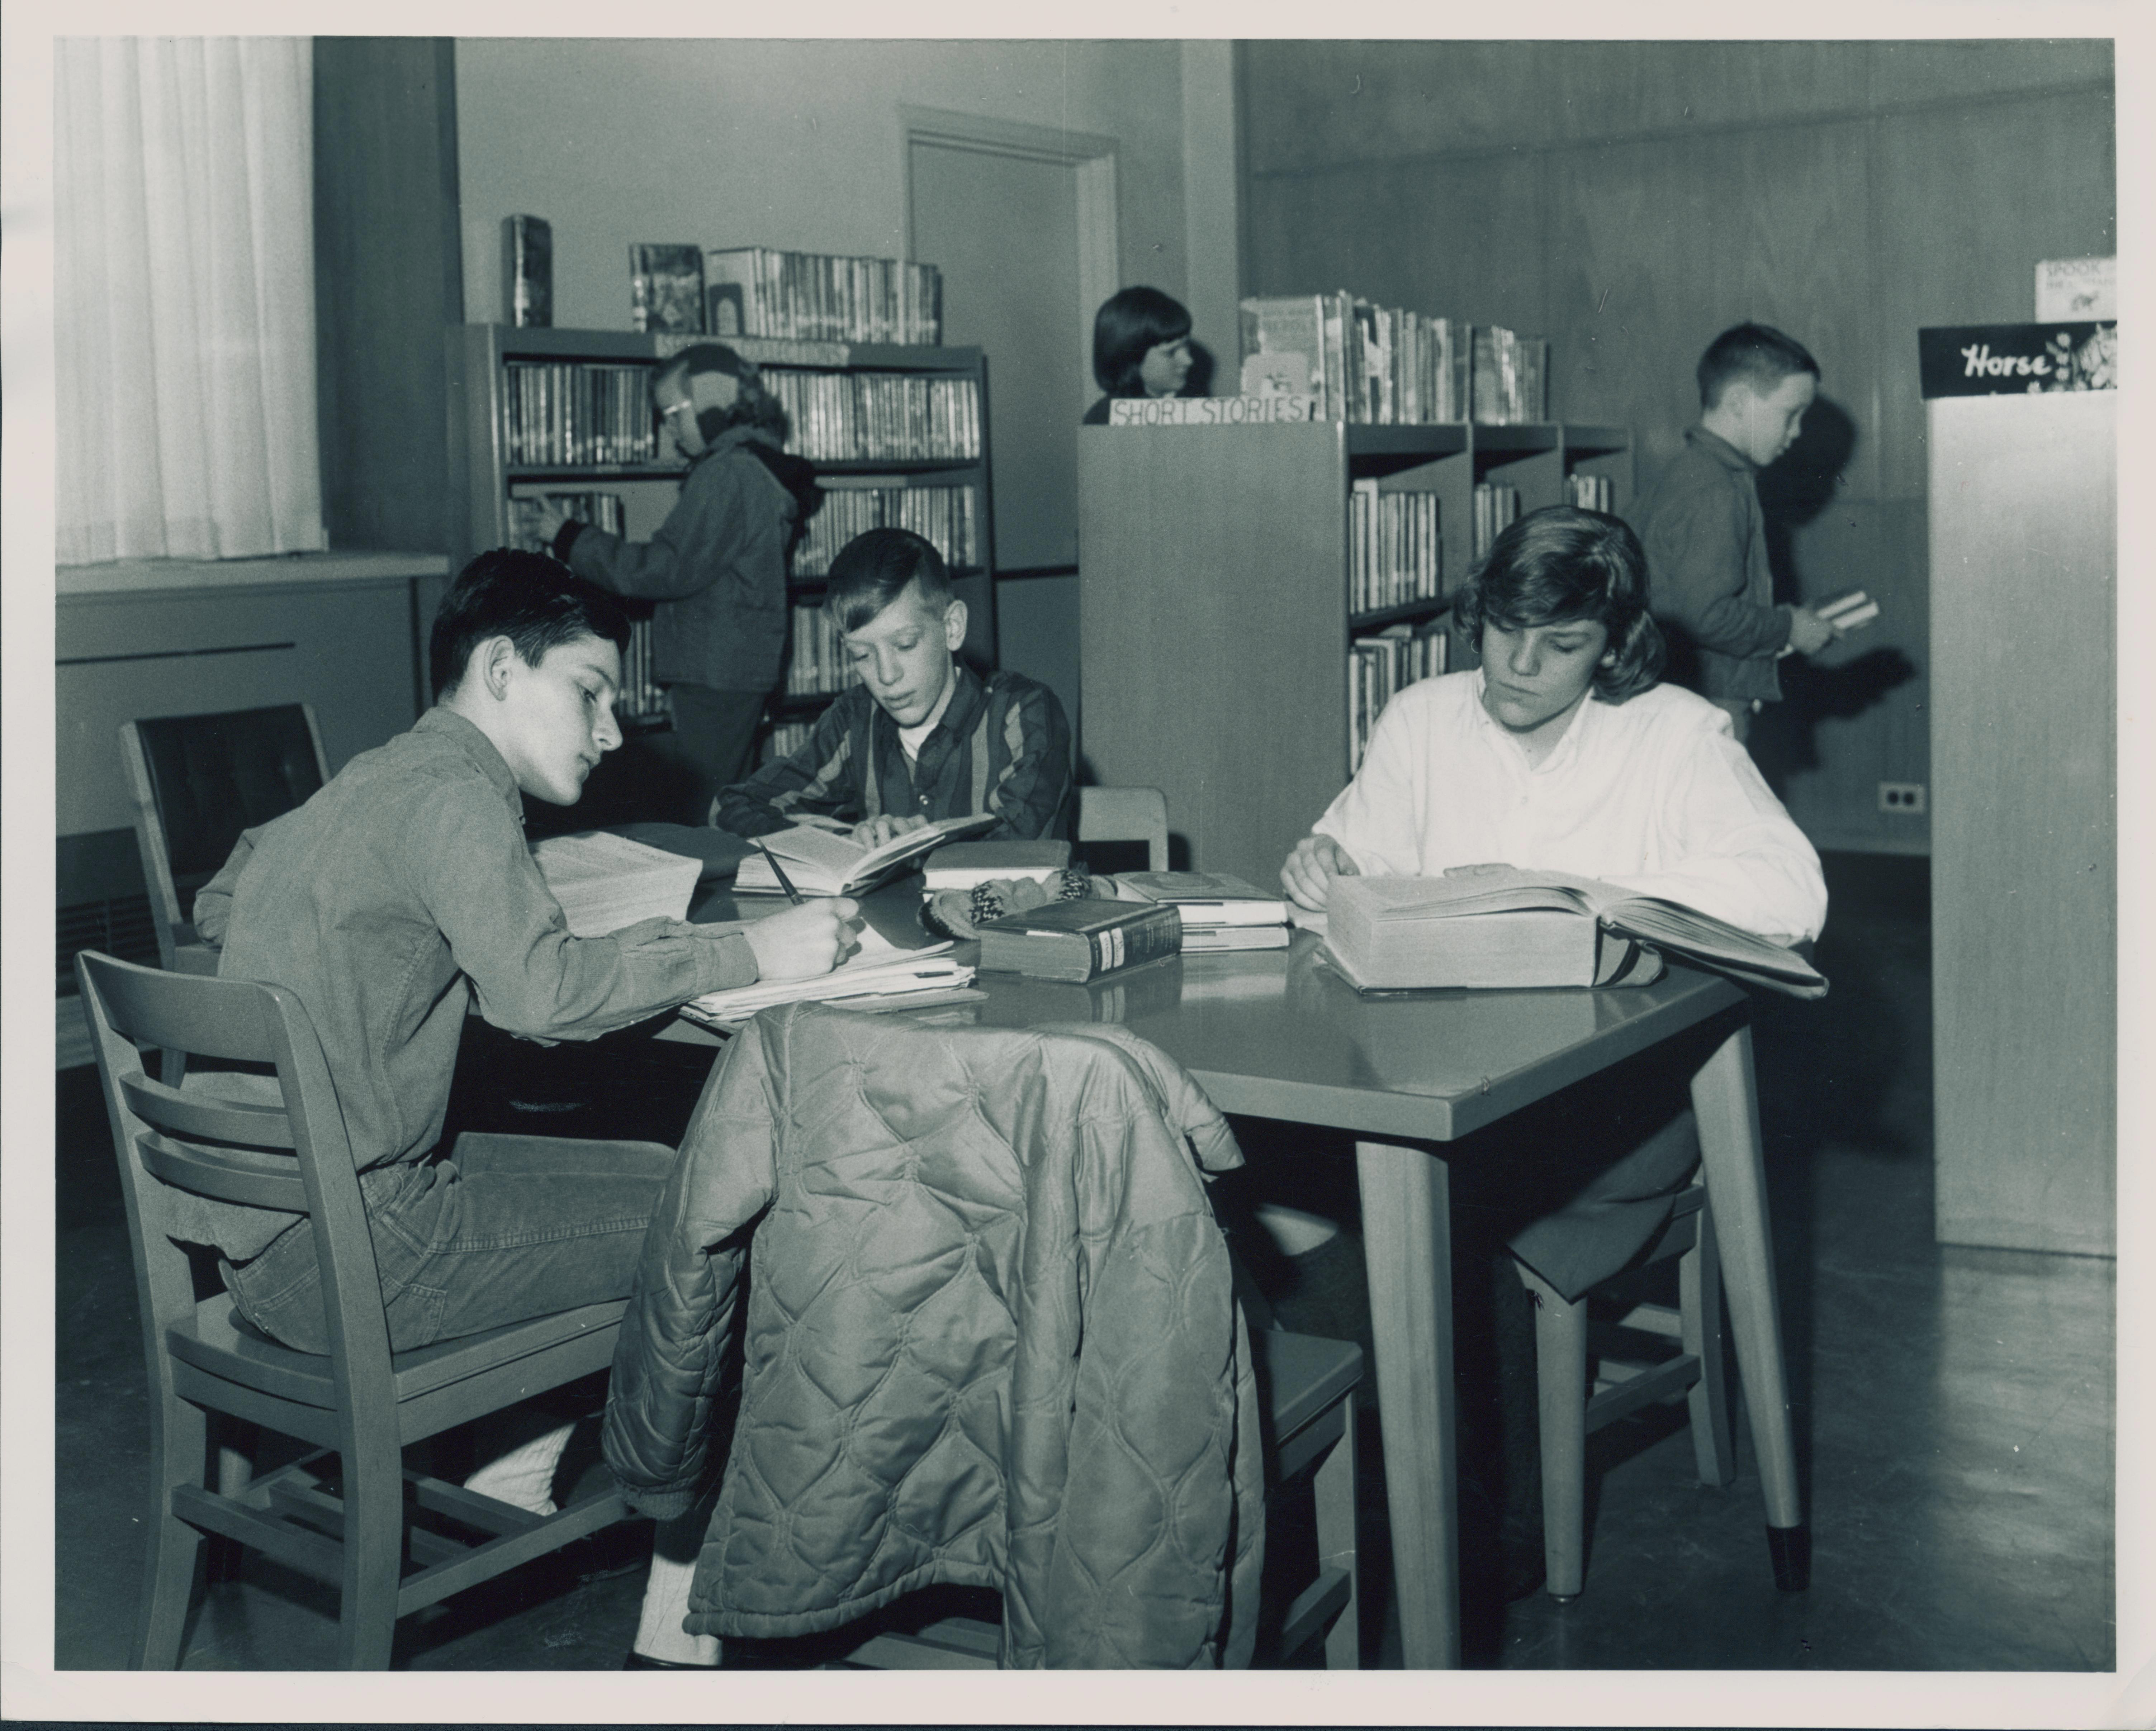 Library-1960-1969-Photo 1